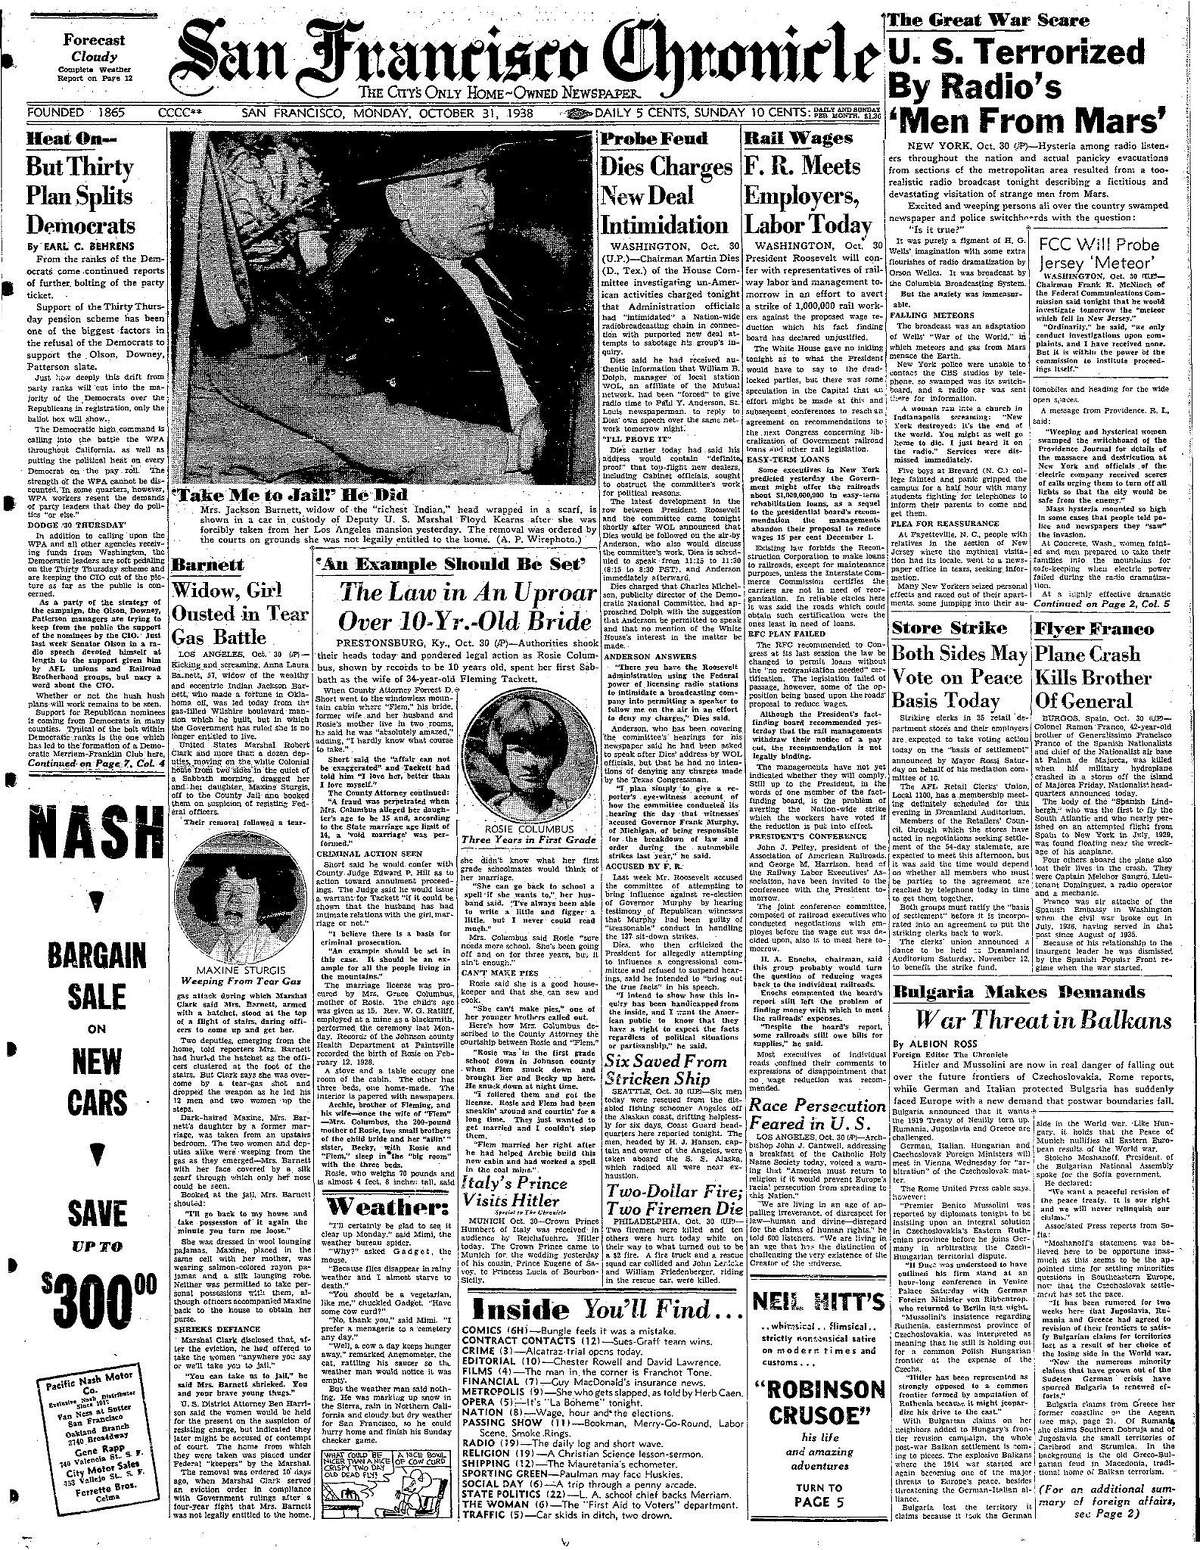 Historic Chronicle Front Page October 31, 1938 Orson Welles radio broadcast of H.G. Wells' War of the Worlds causes fear and panic Chron365, Chroncover